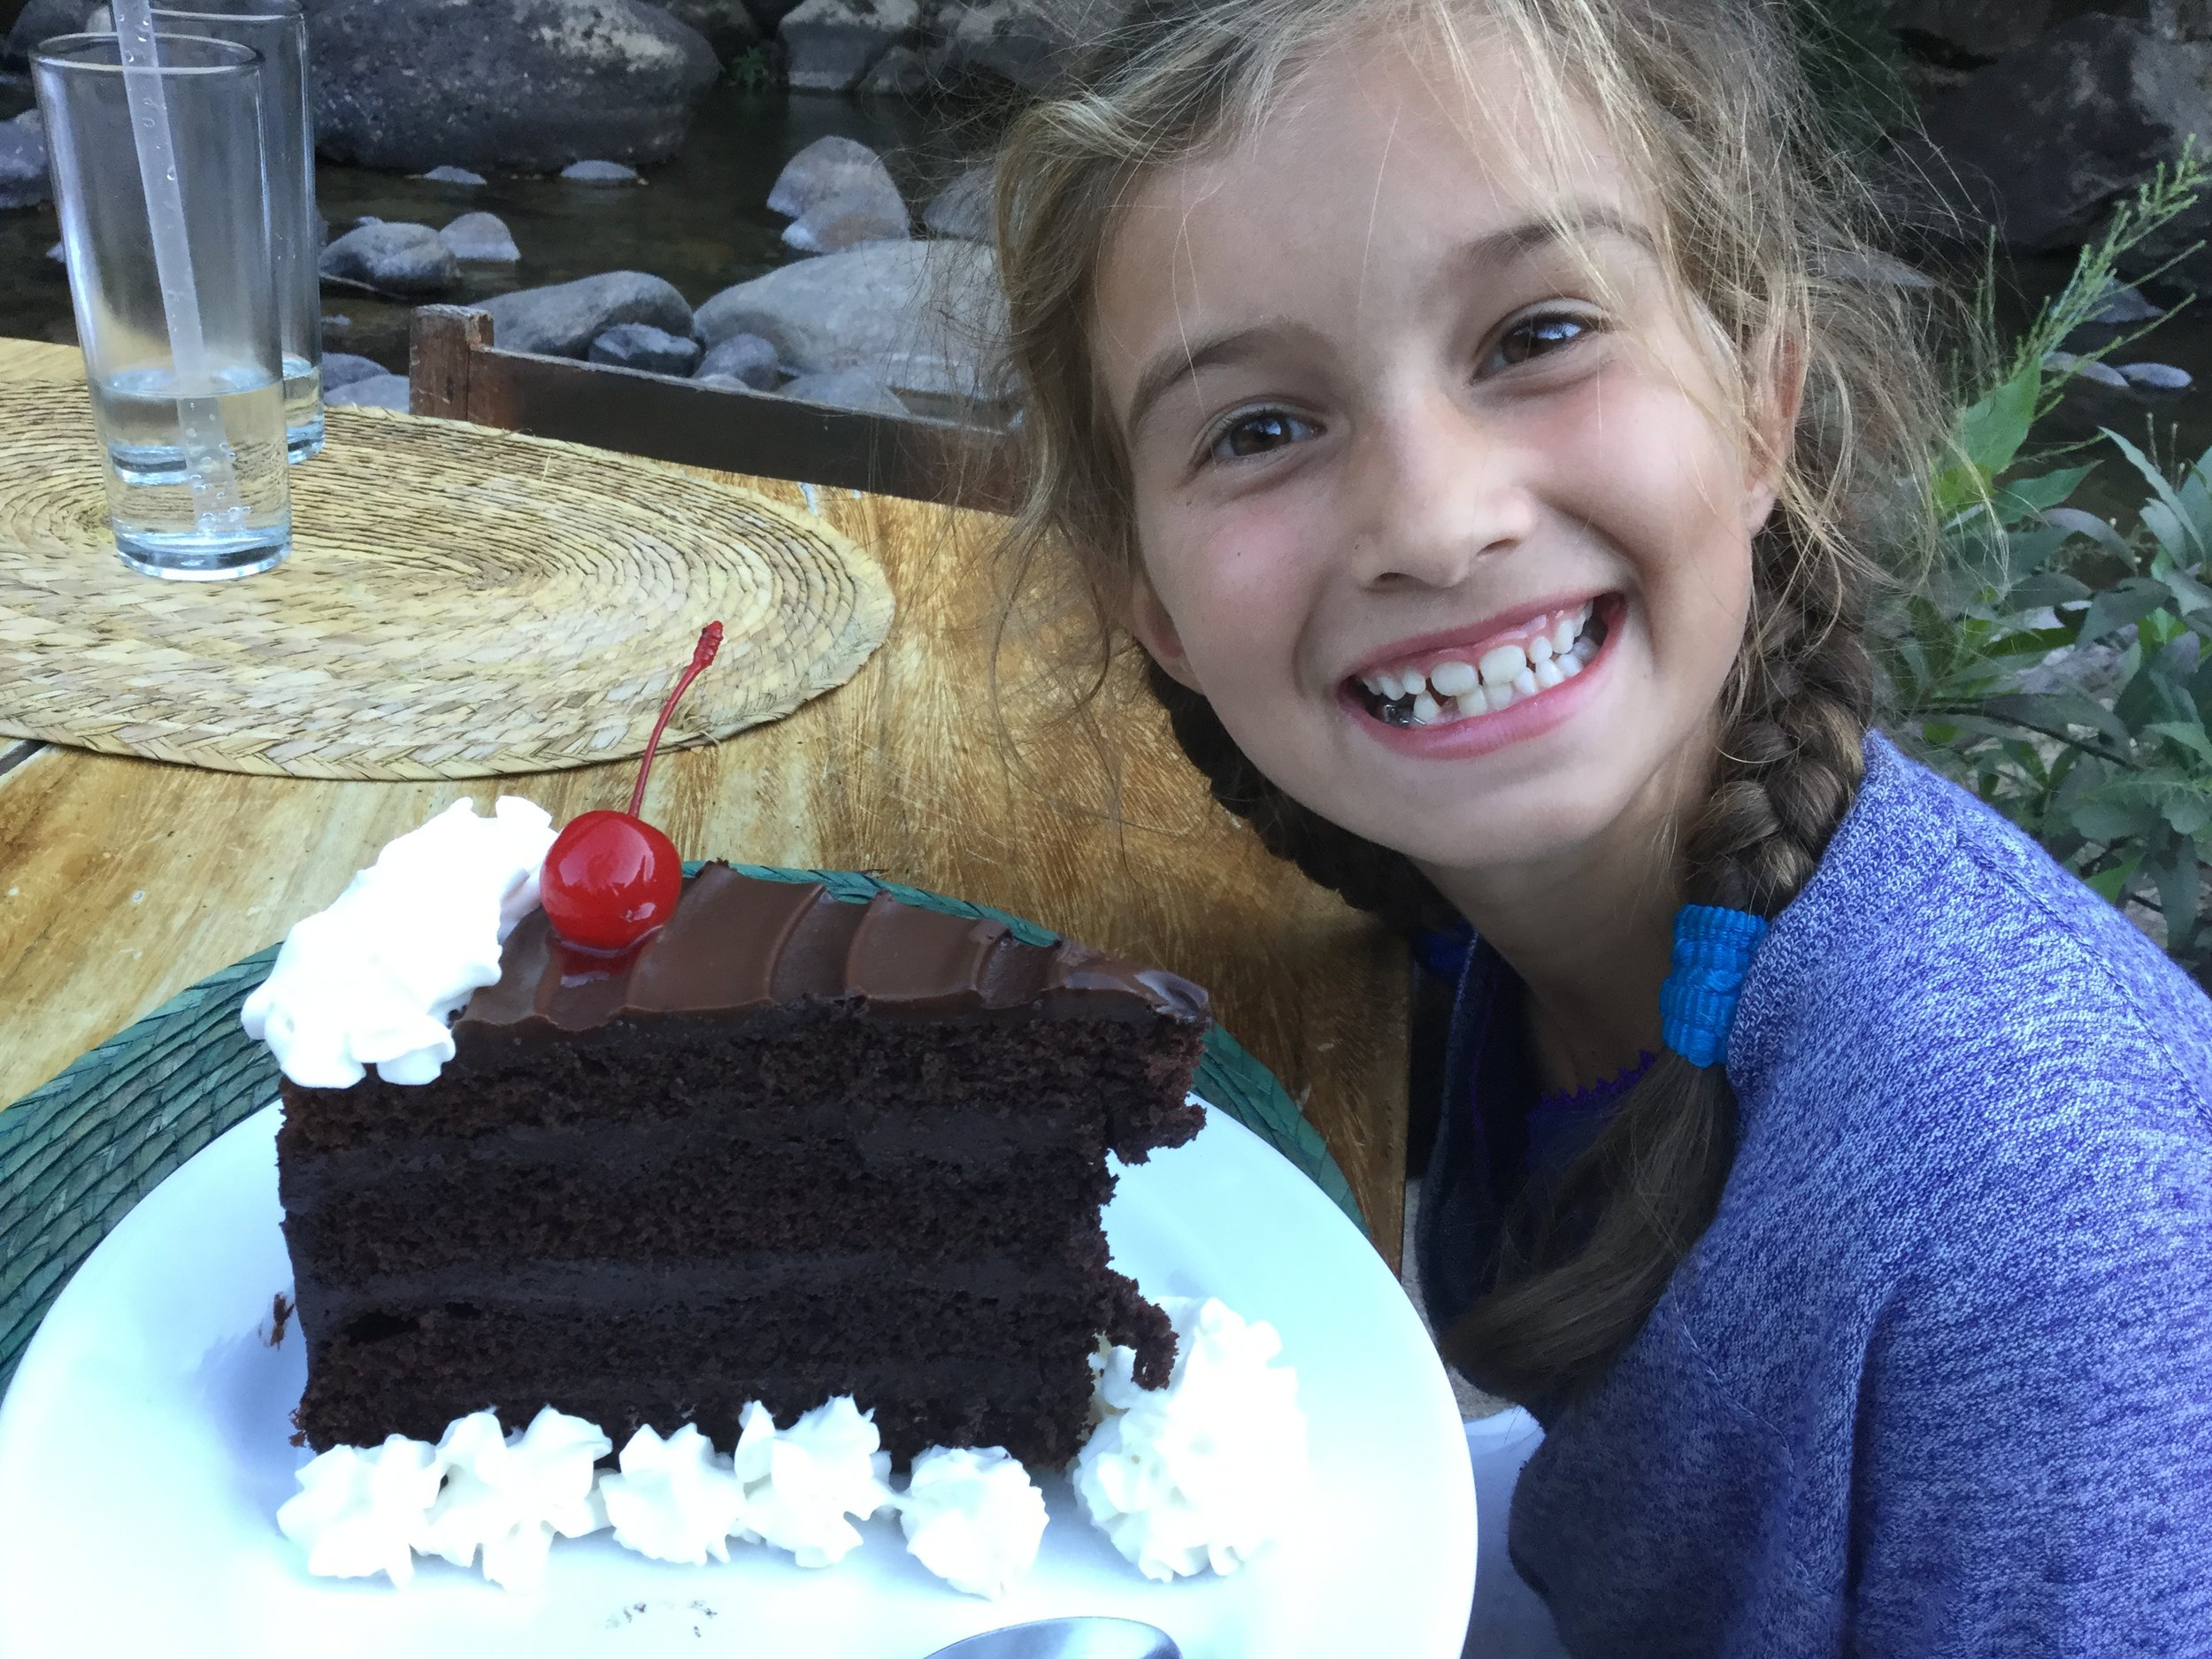 And the chocolate cake was pretty impressive as well.